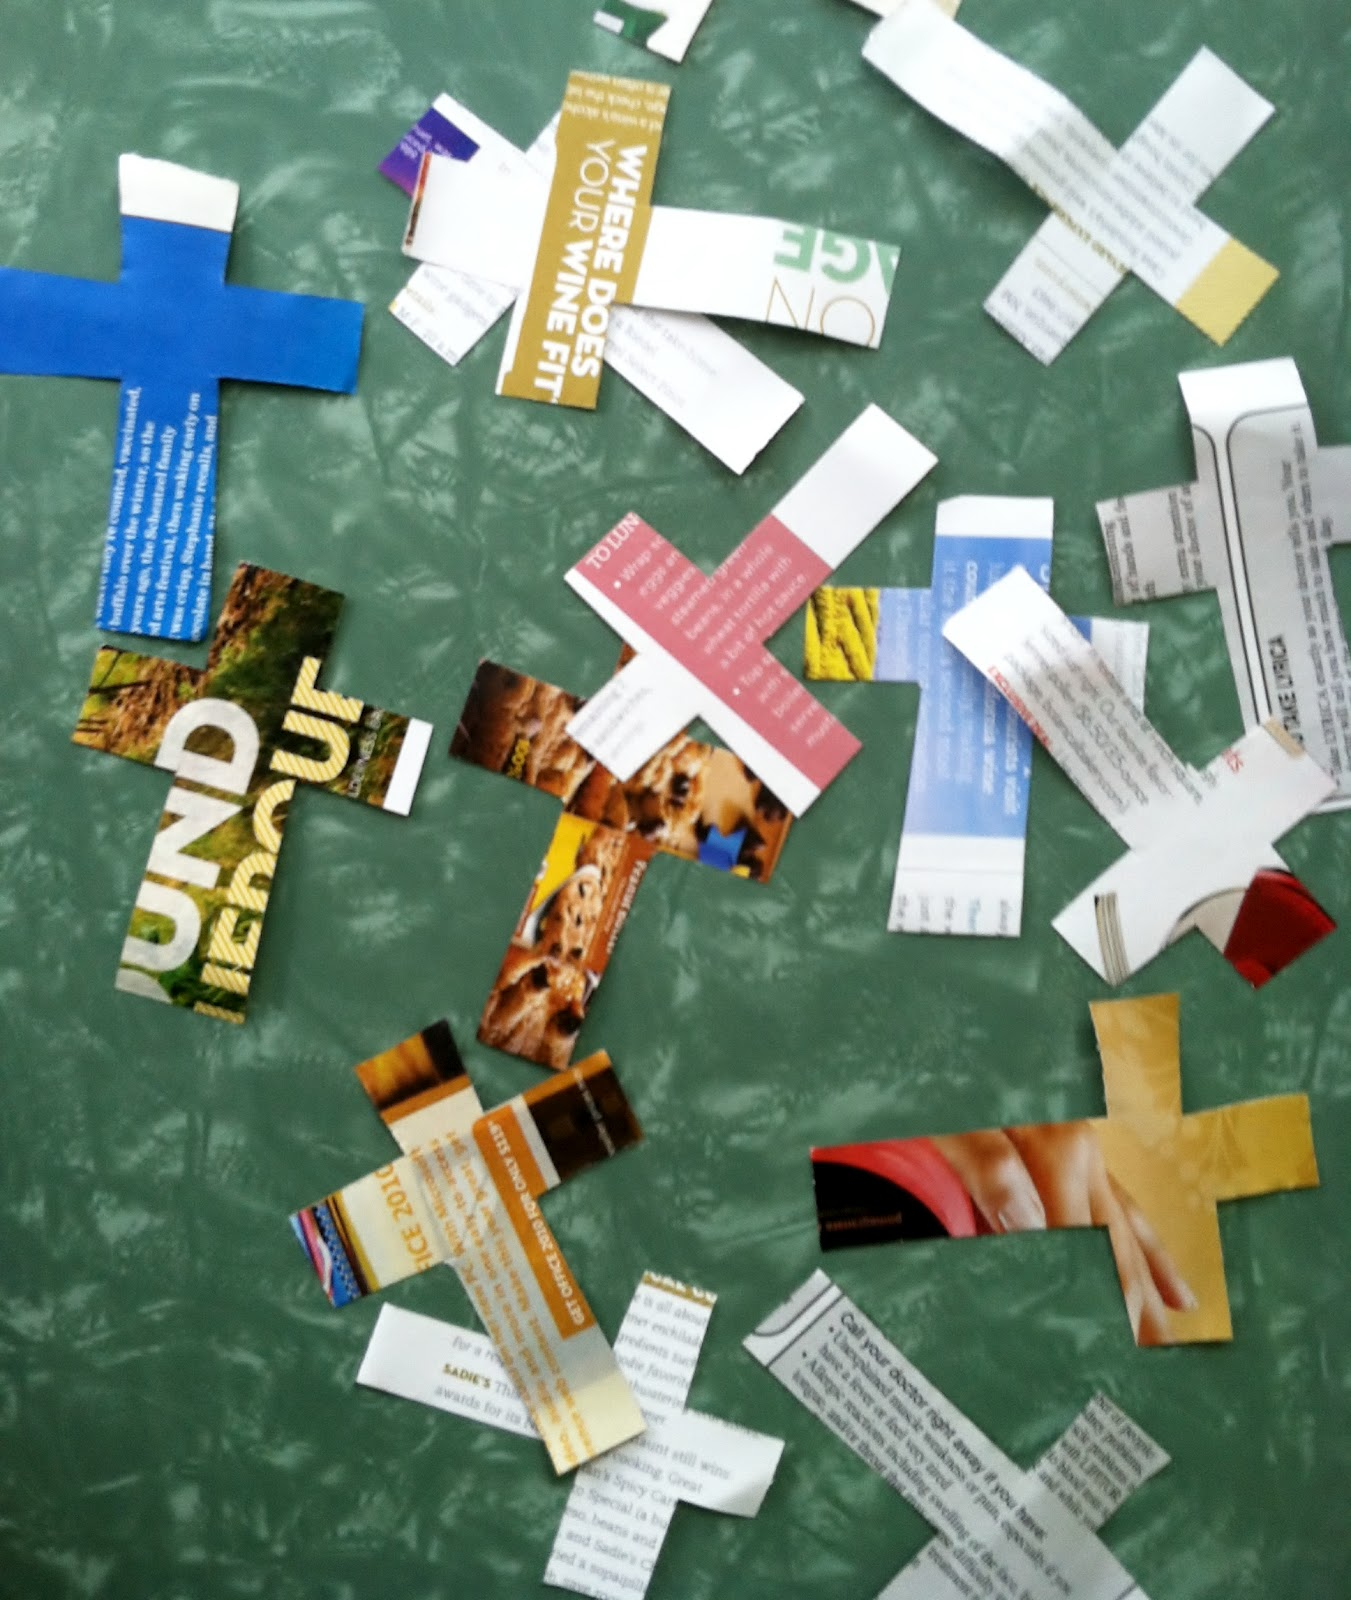 The Crosses Were Well Received Who Wouldnt Love A Drool Covered Paper Cross From Sweet Little Tot Out Ones Learned That Paul And Barnabas Told